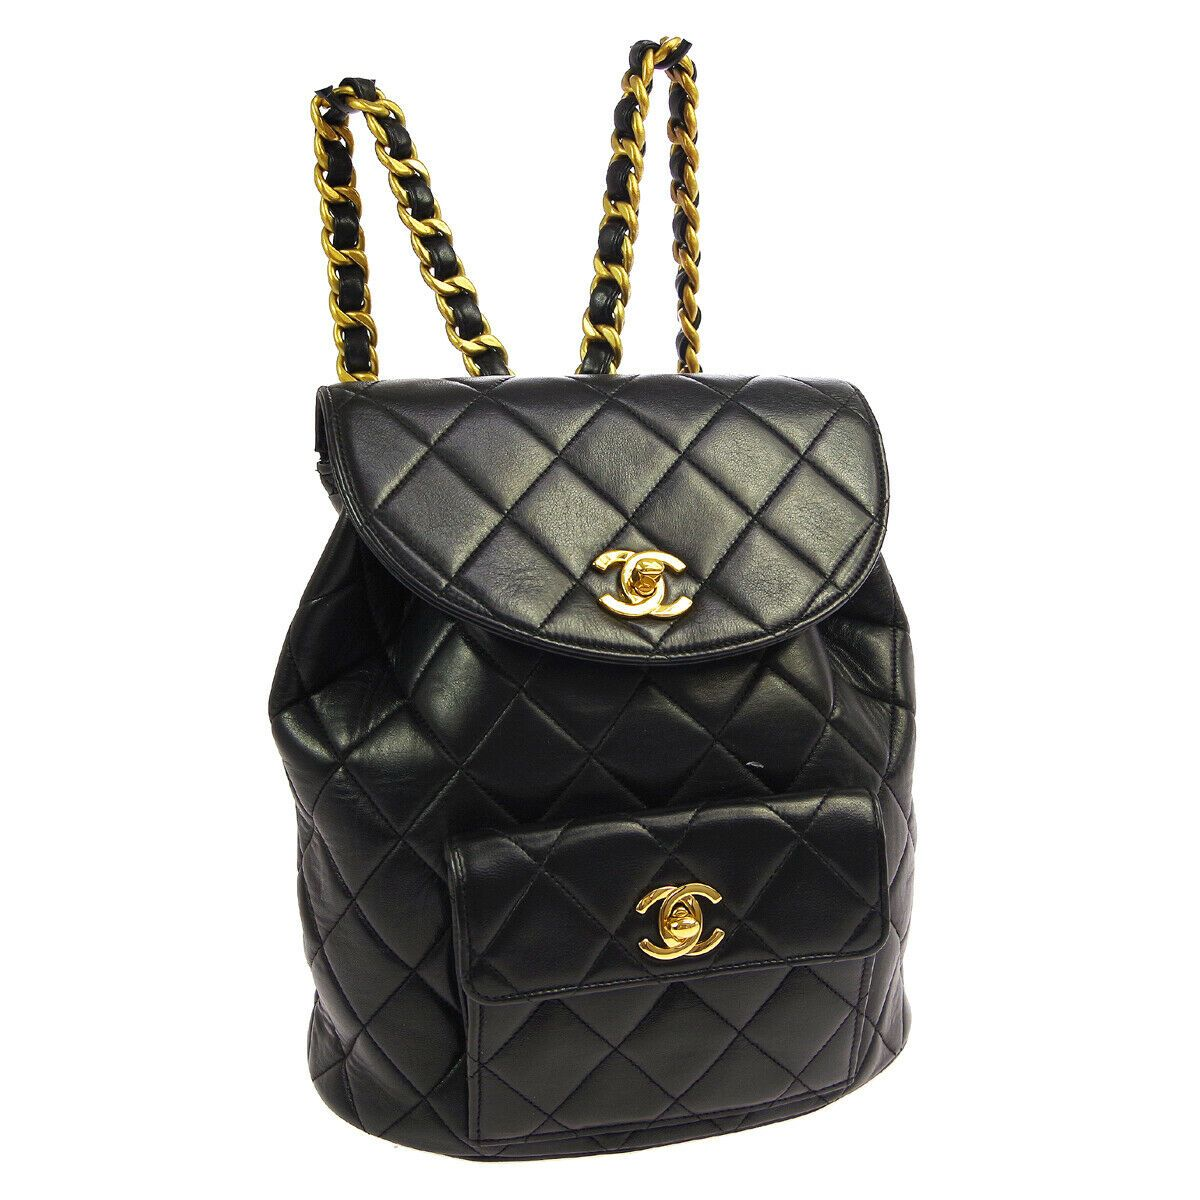 Chanel Quilted Cc Chain Backpack Bag 3992239 Purse Black Leather Vintage Ak40341 Ebay In 2020 Backpack Bags Black Leather Backpacks